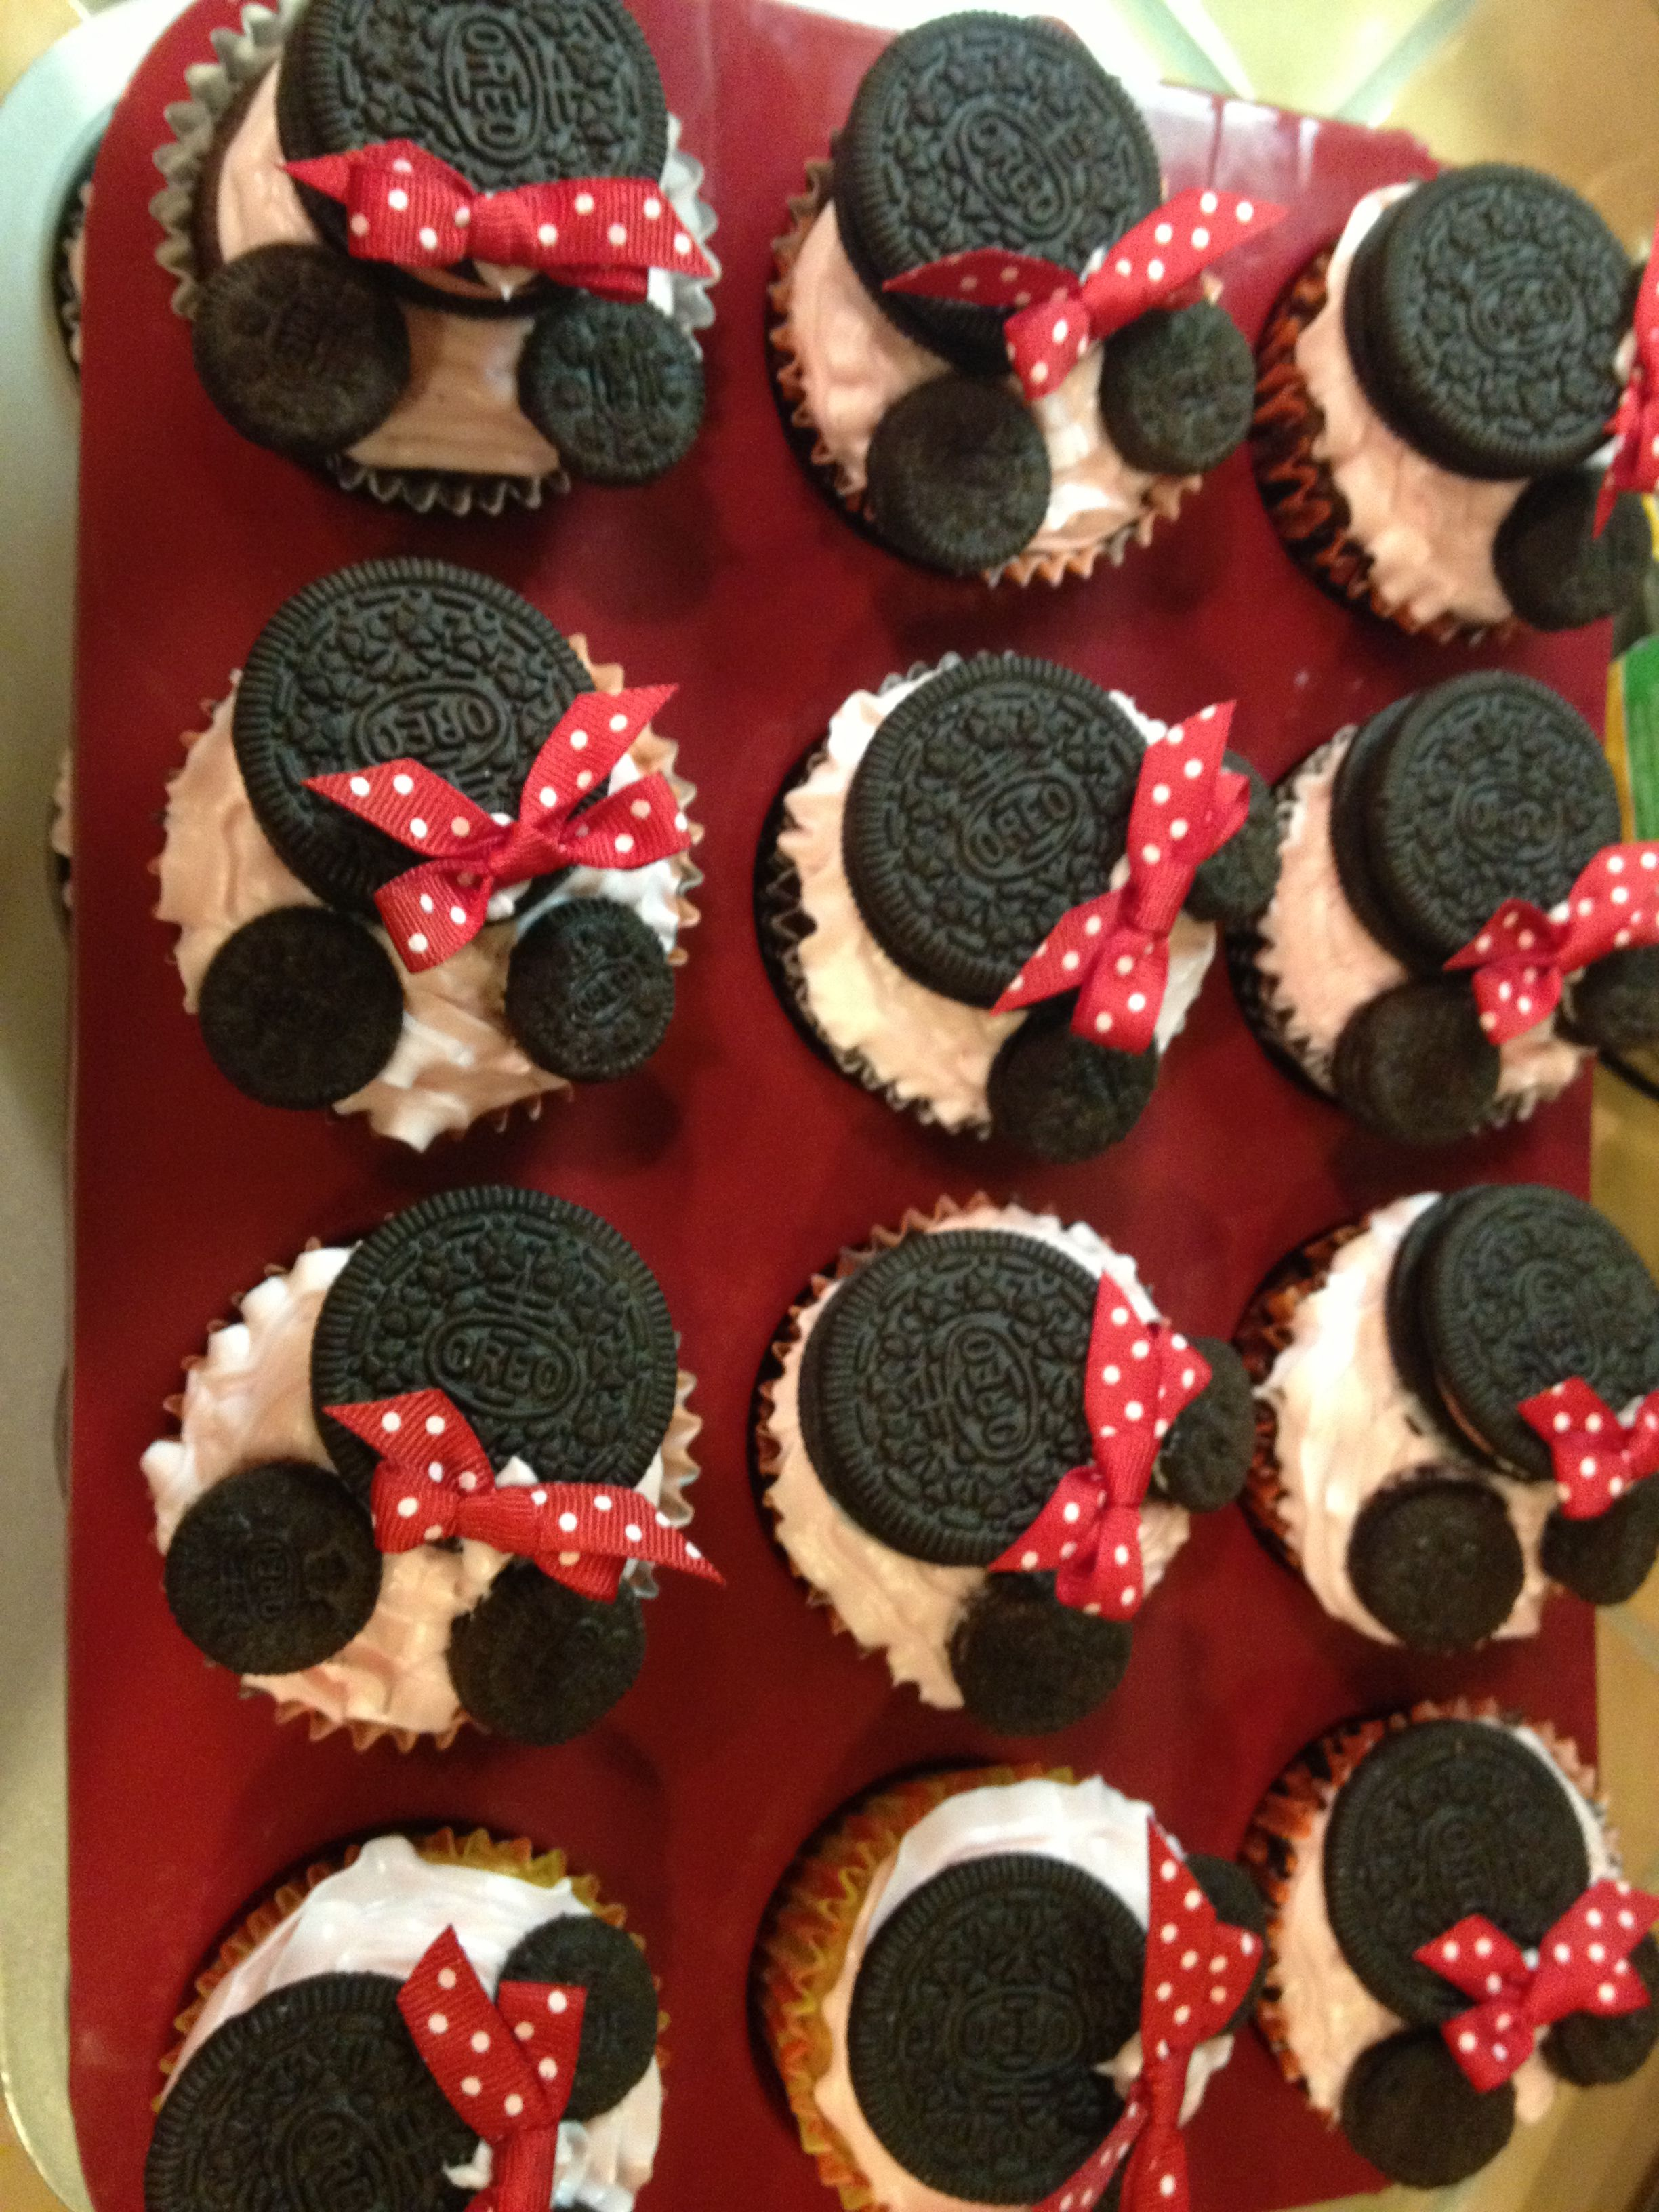 Minnie cupcakes for Alyssa's 2nd BDay